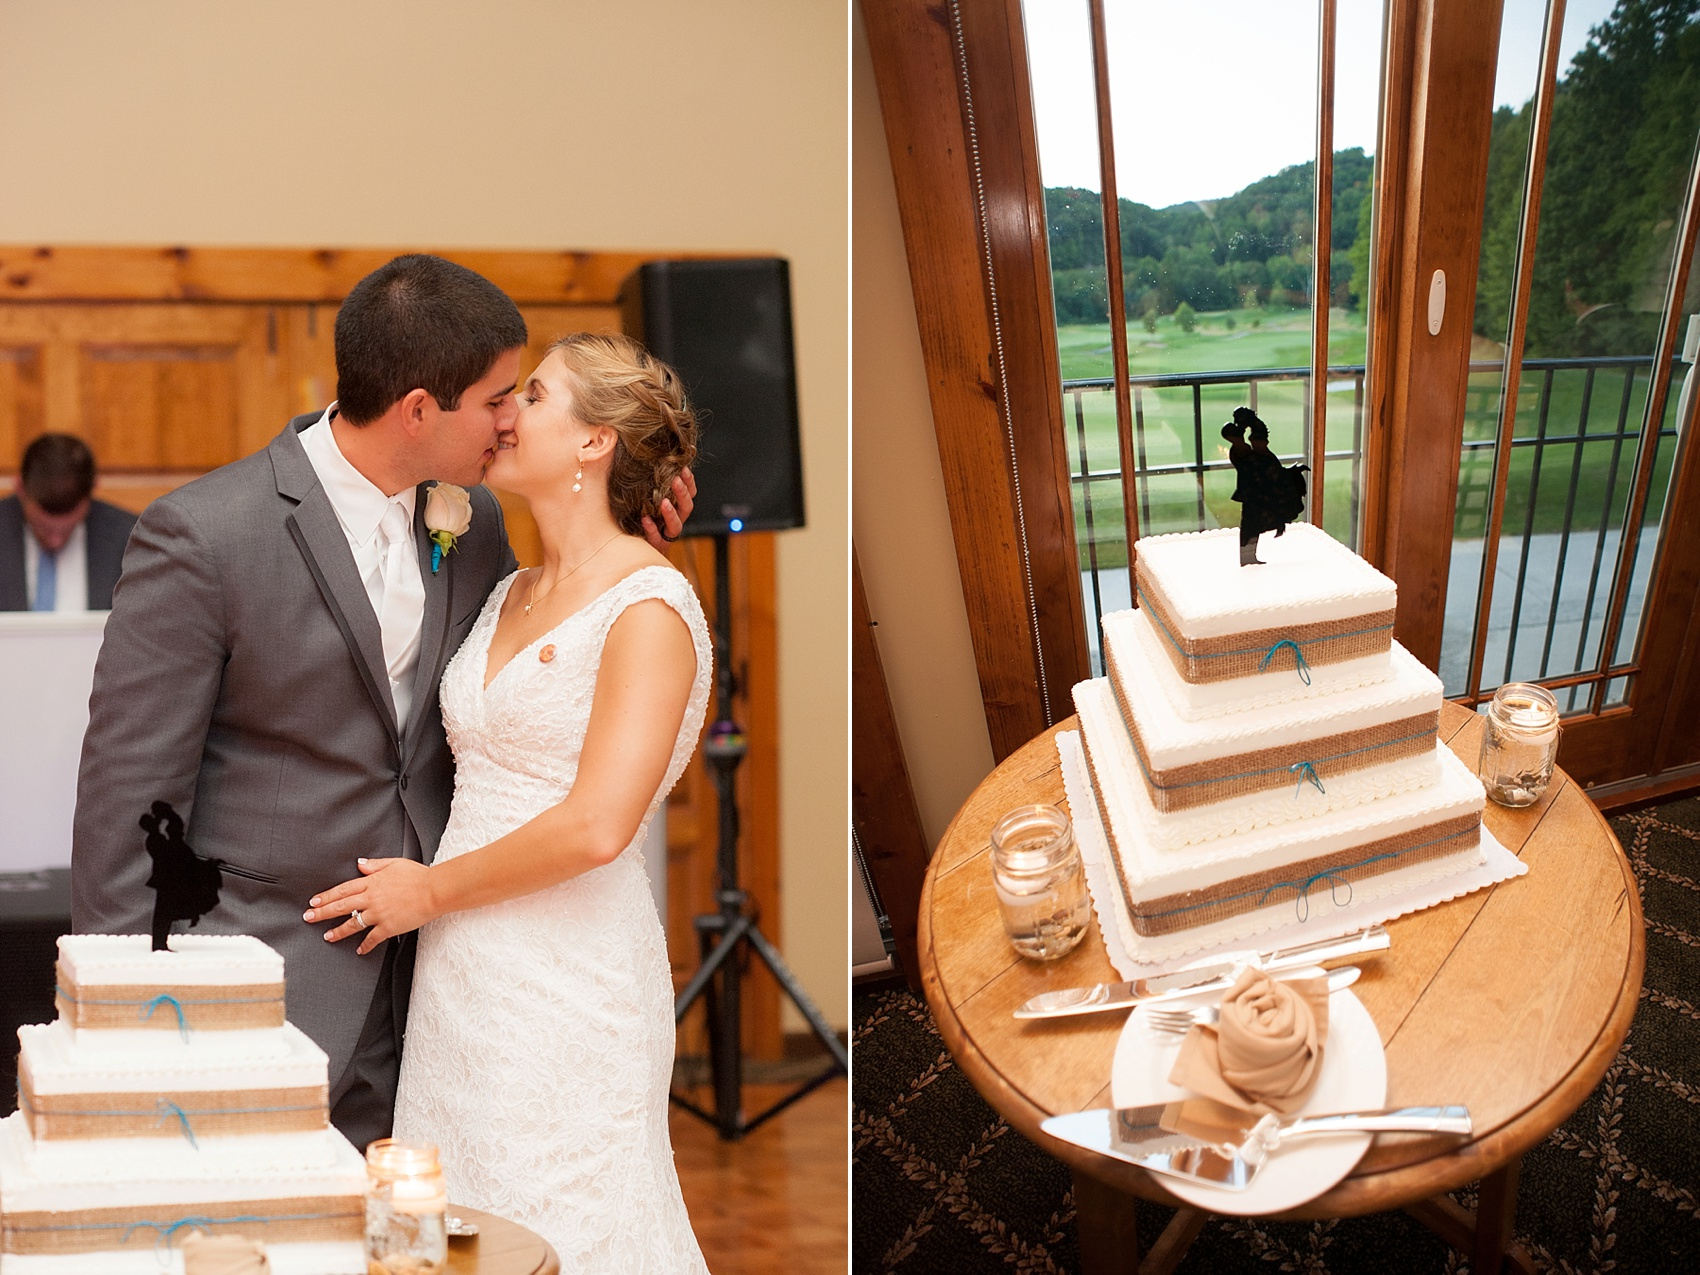 Silhouette cake topper for a rustic Hollow Brook Golf Club summer wedding photos in Cortlandt Manor, New York, by Mikkel Paige Photography.